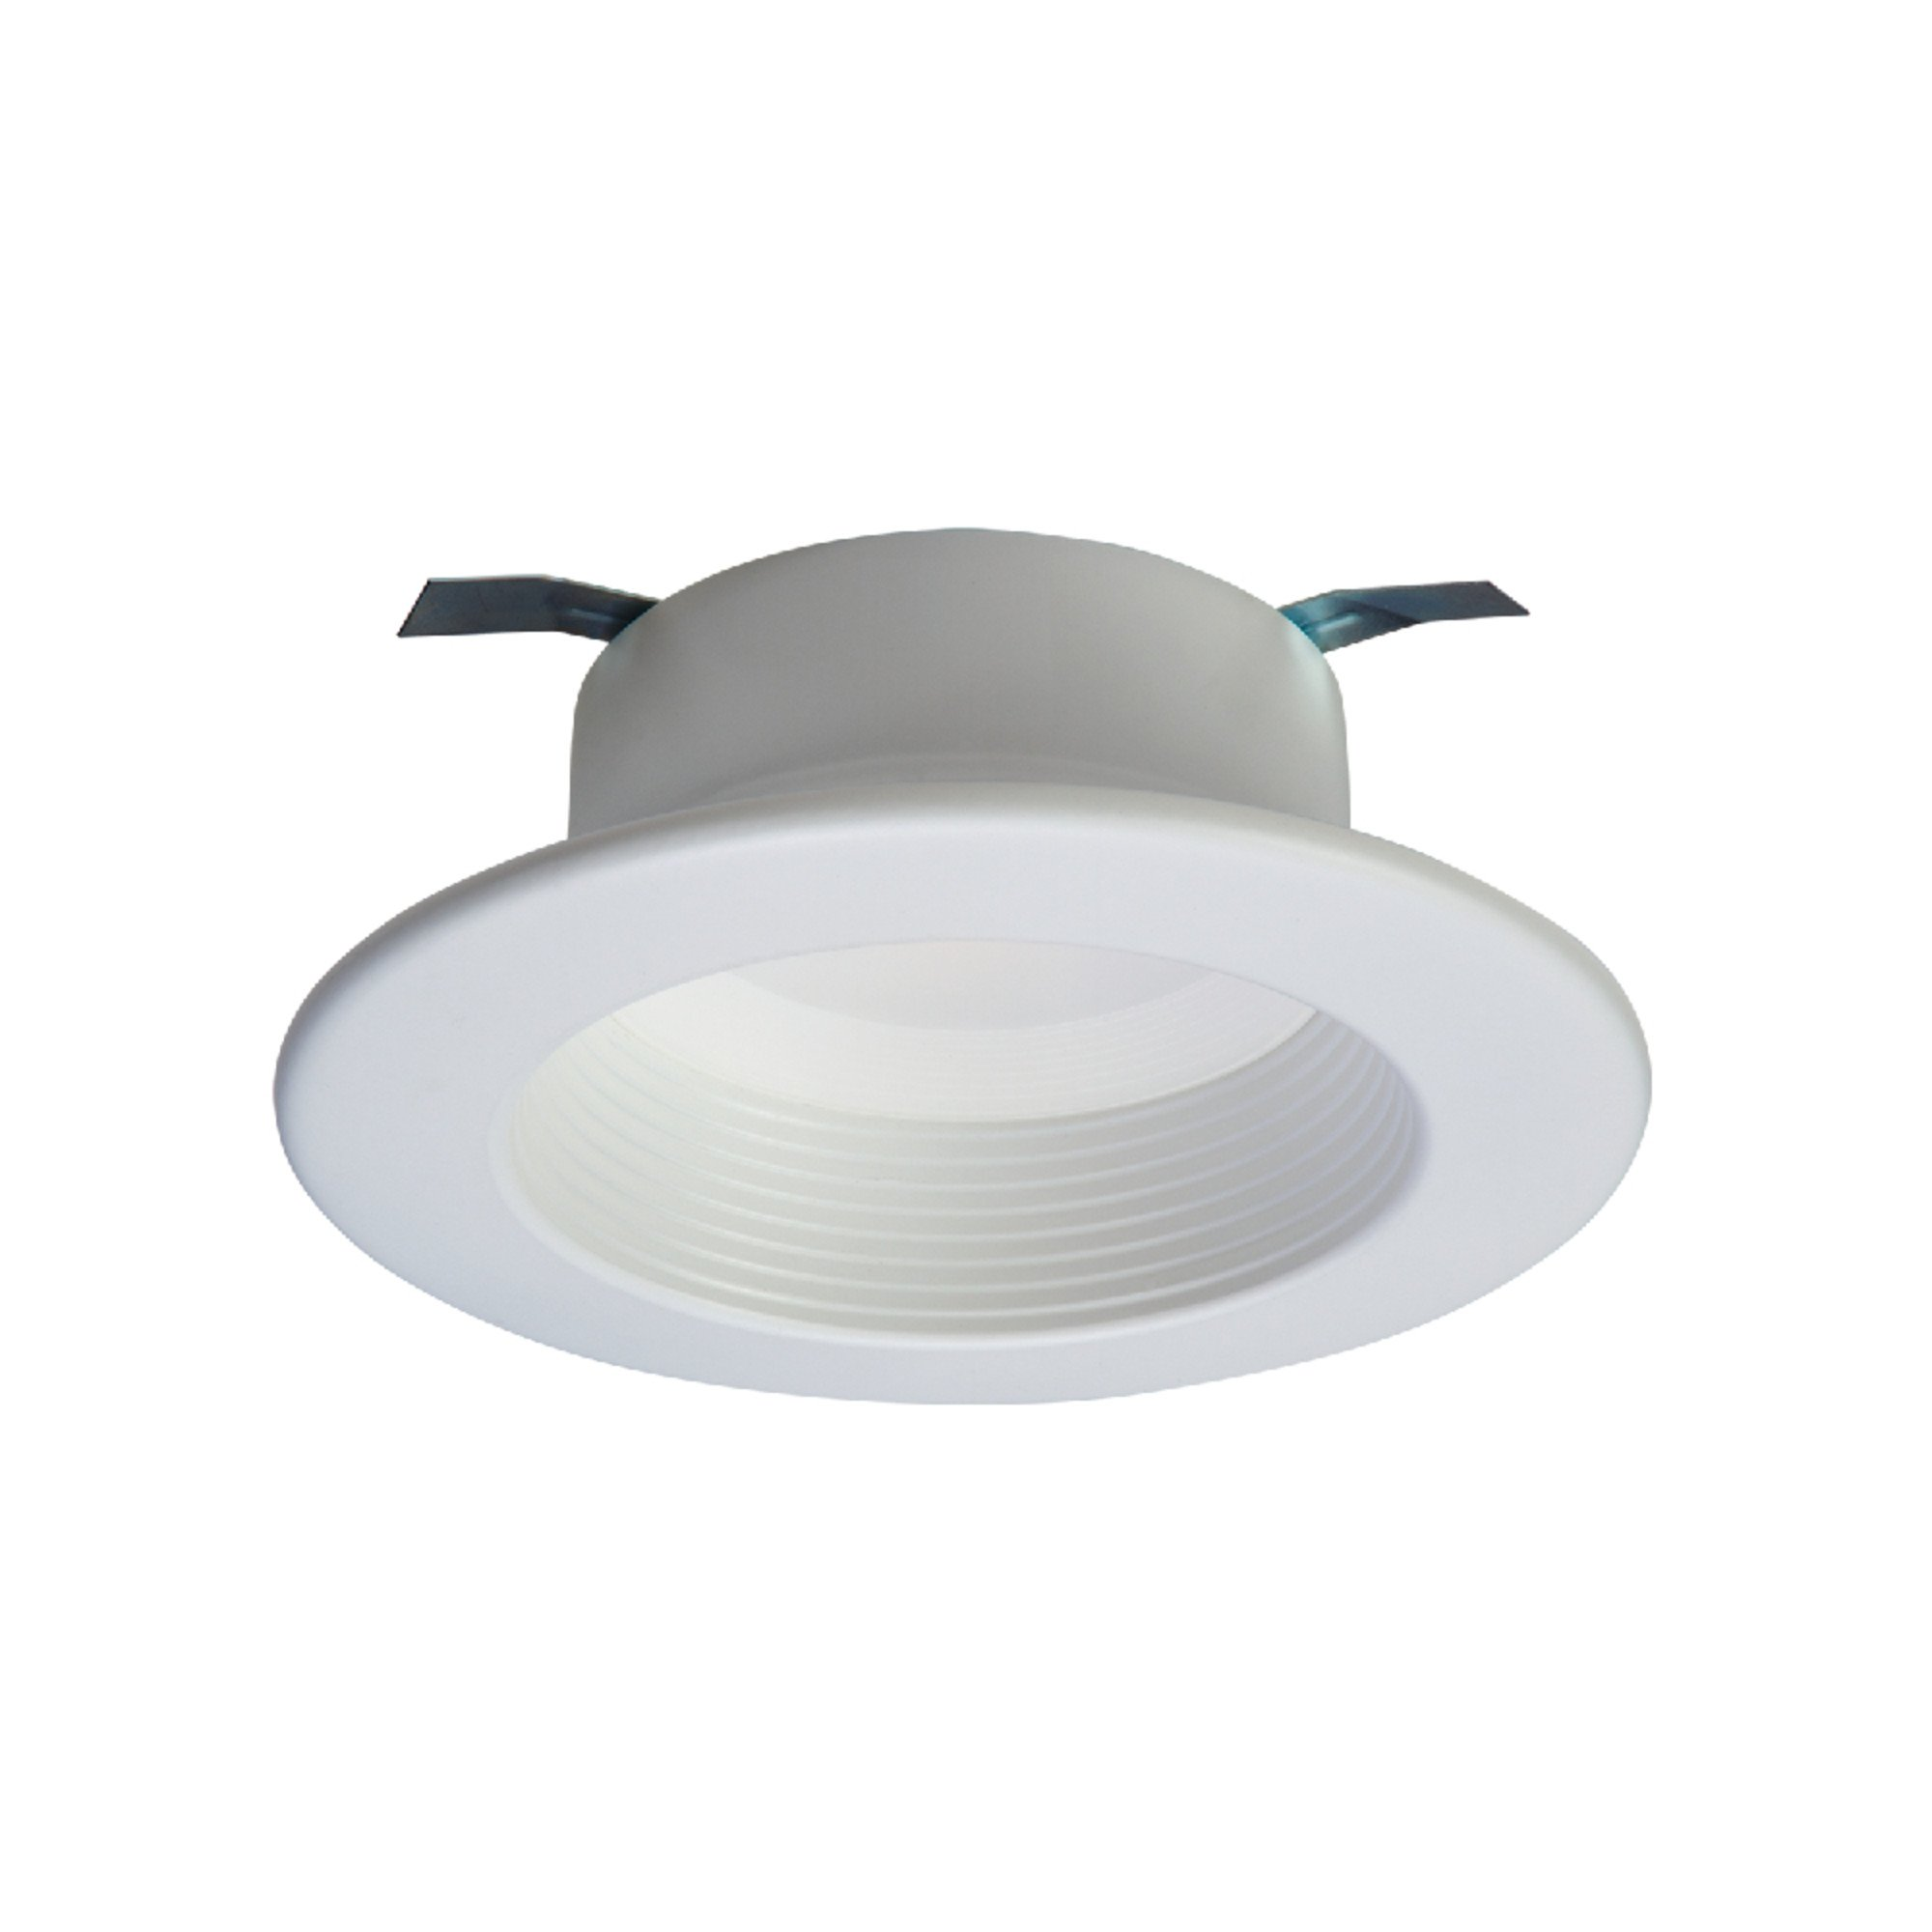 Halo RL460WH940 RL Integrated LED Recessed Lighting Retrofit Downlight Baffle Trim with 90 CRI, 4000K, 4'', White